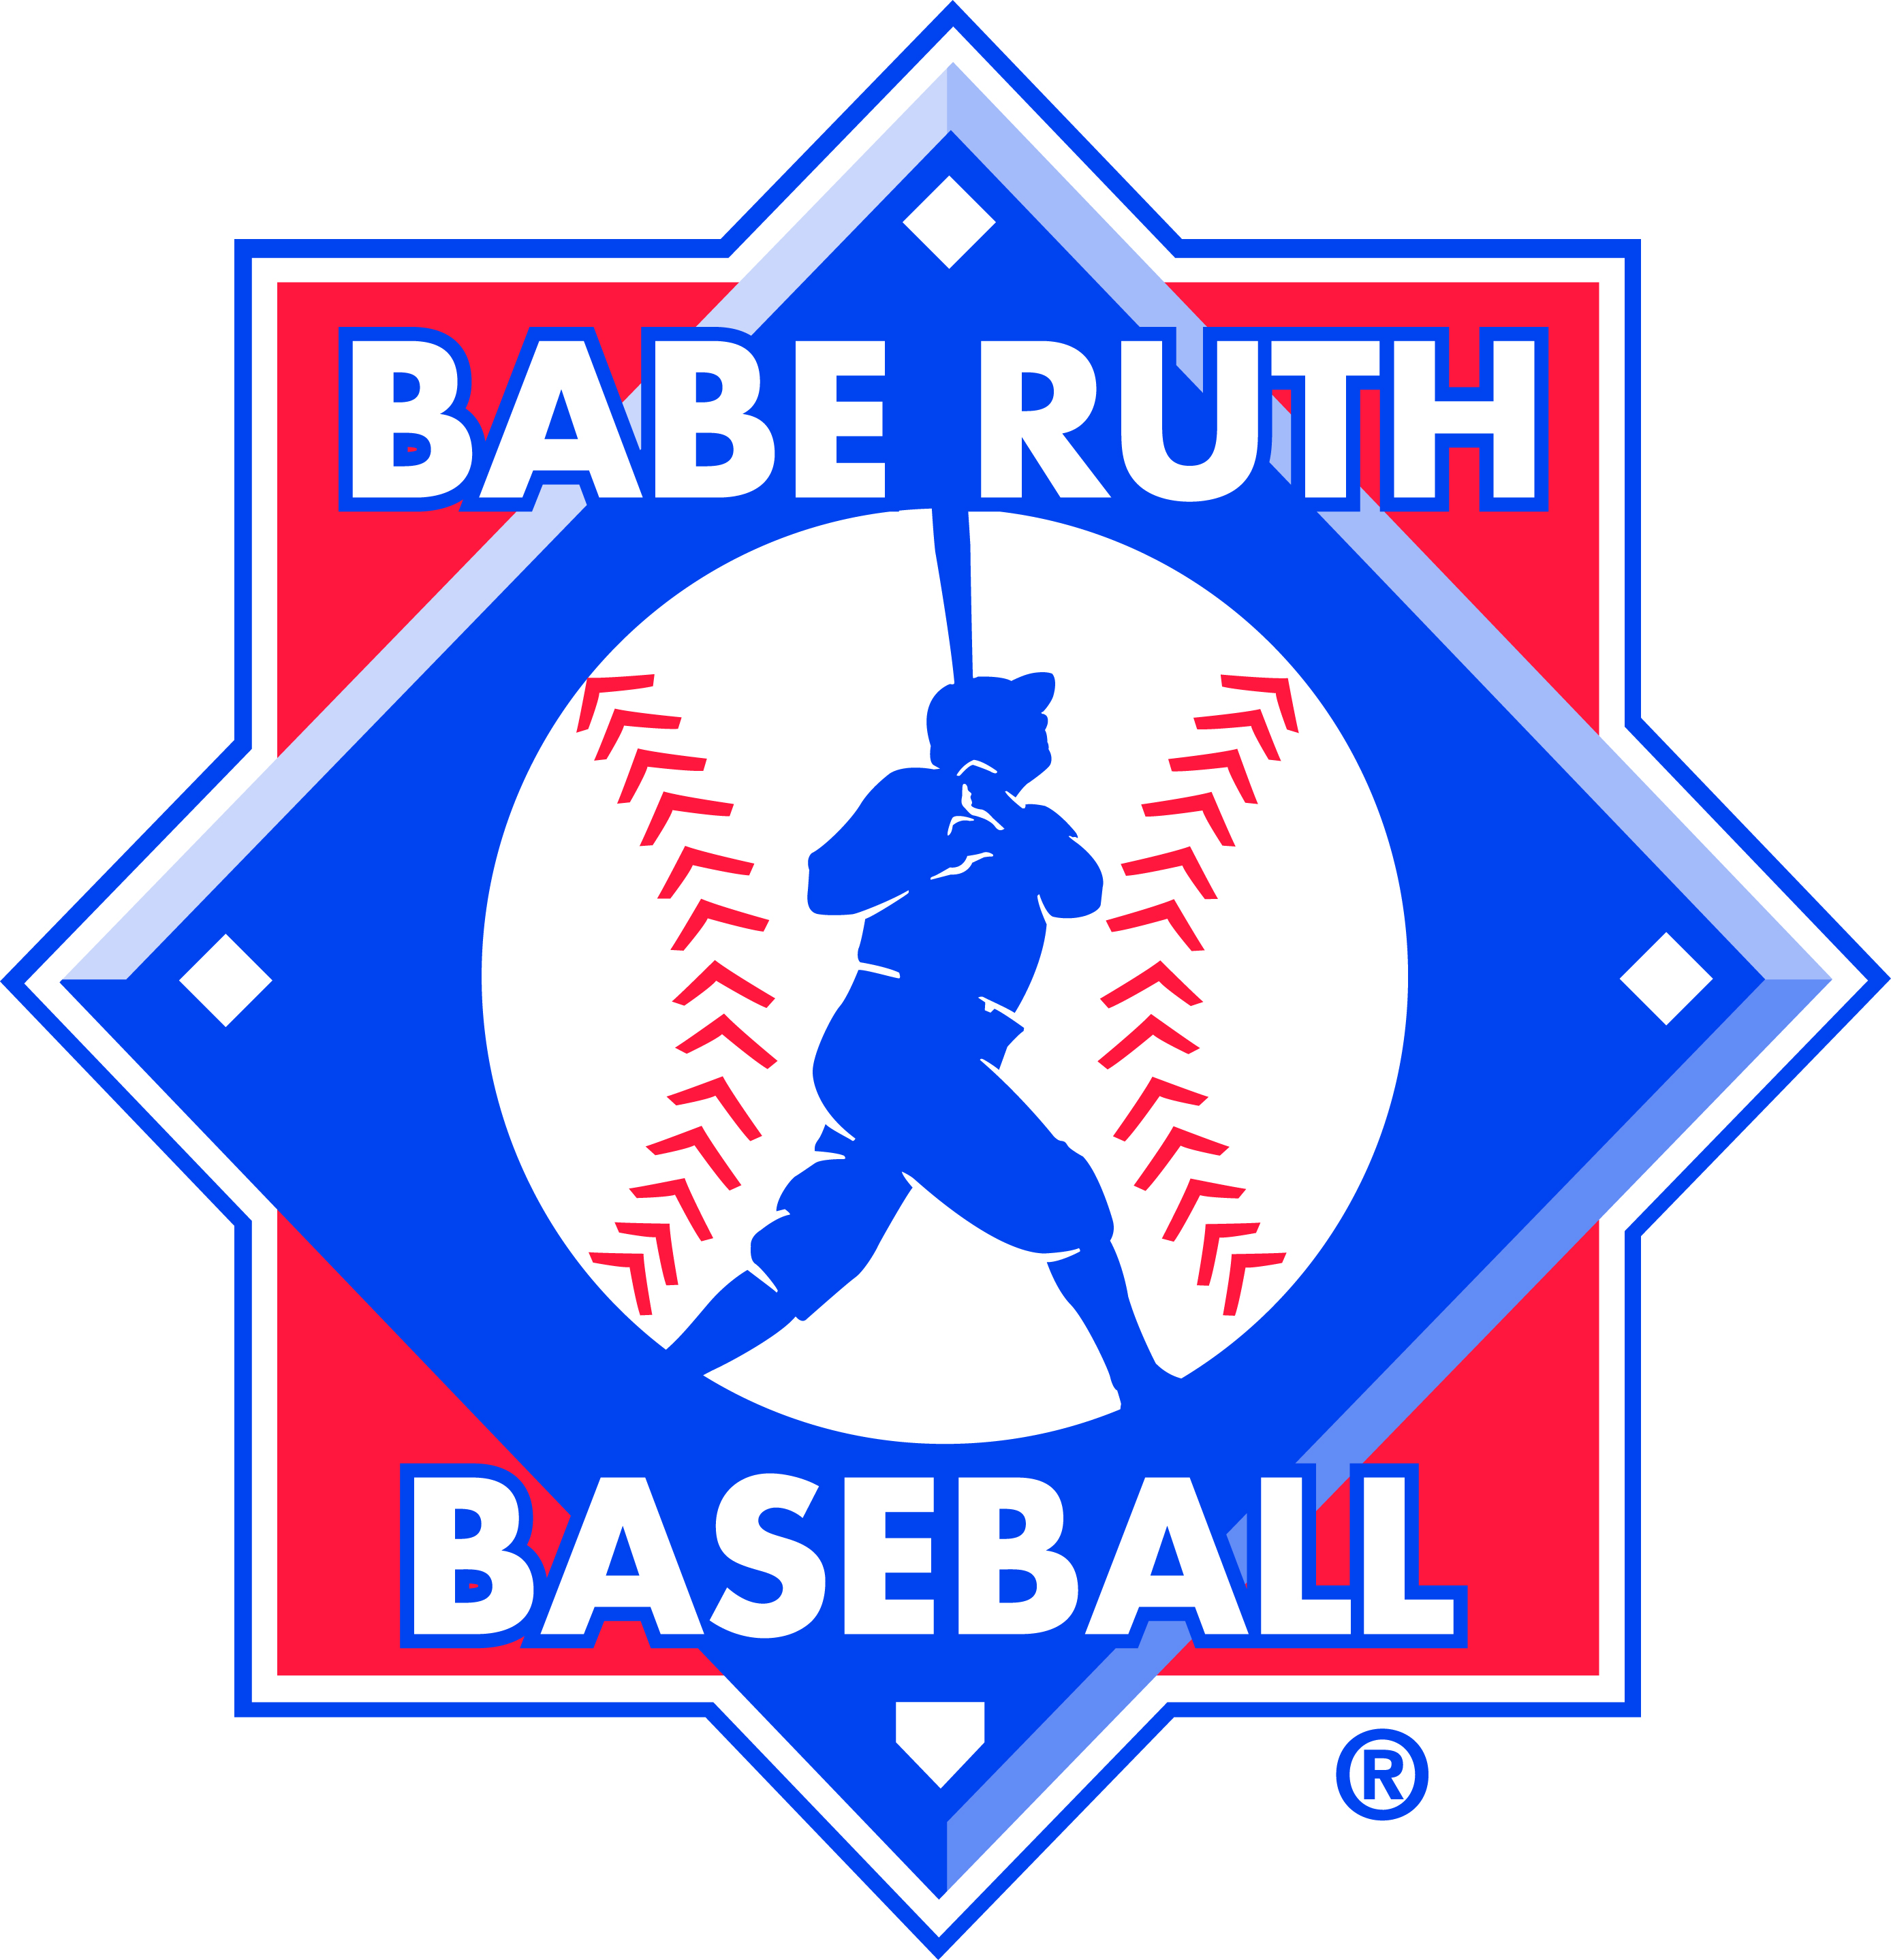 Babe Ruth Baseball JPEG